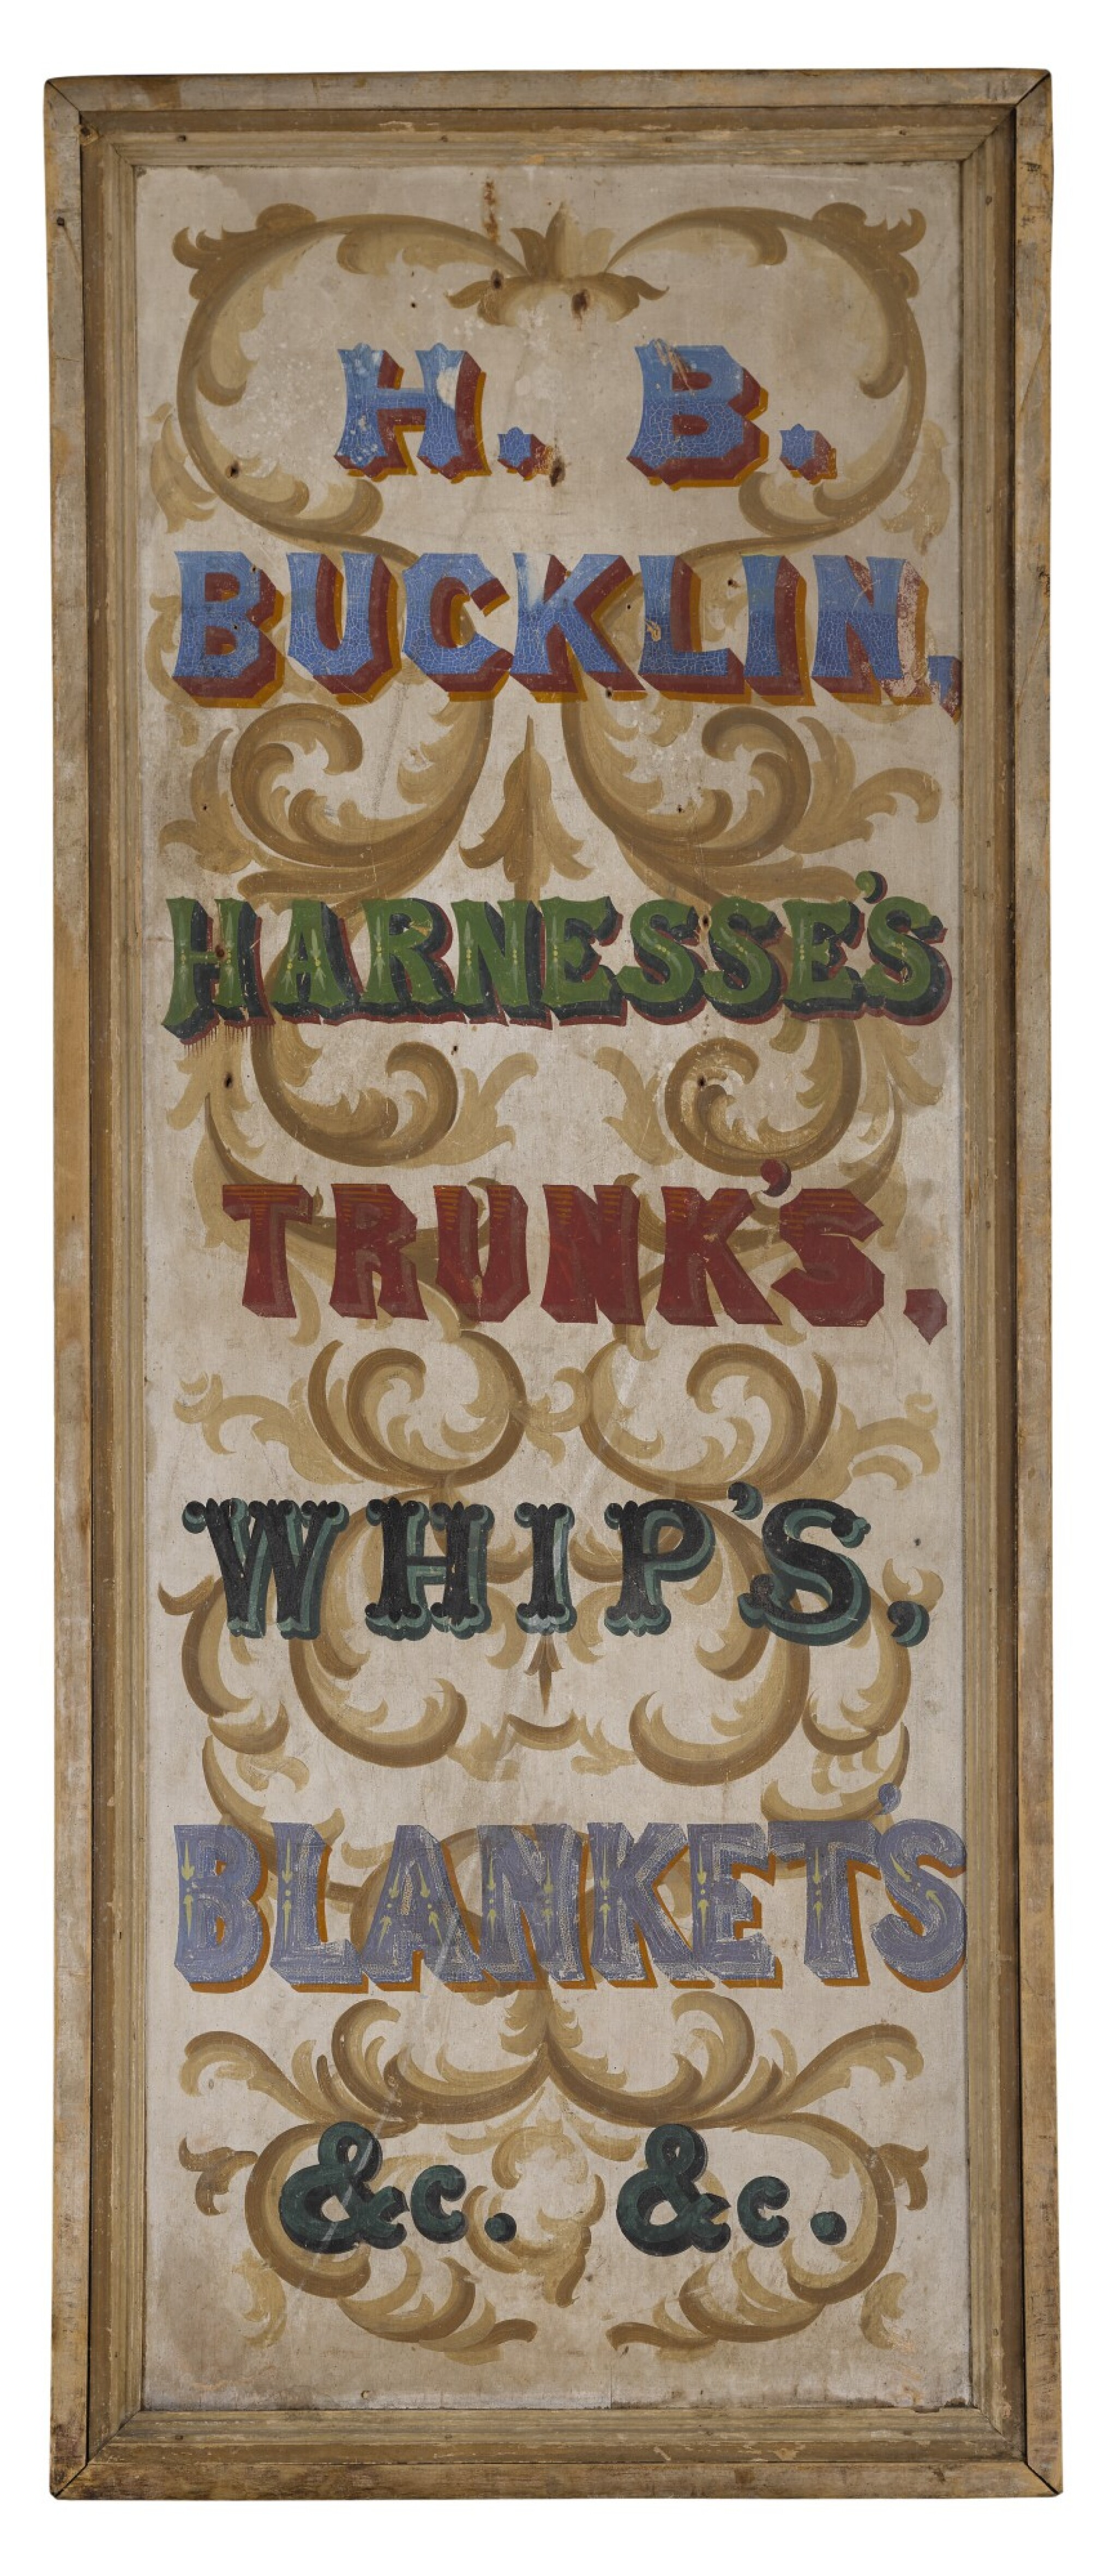 View full screen - View 1 of Lot 1483. AMERICAN POLYCHROME PAINT-DECORATED WOODEN EQUINE TACK AND SUPPLIES TRADE SIGN, 19TH CENTURY.